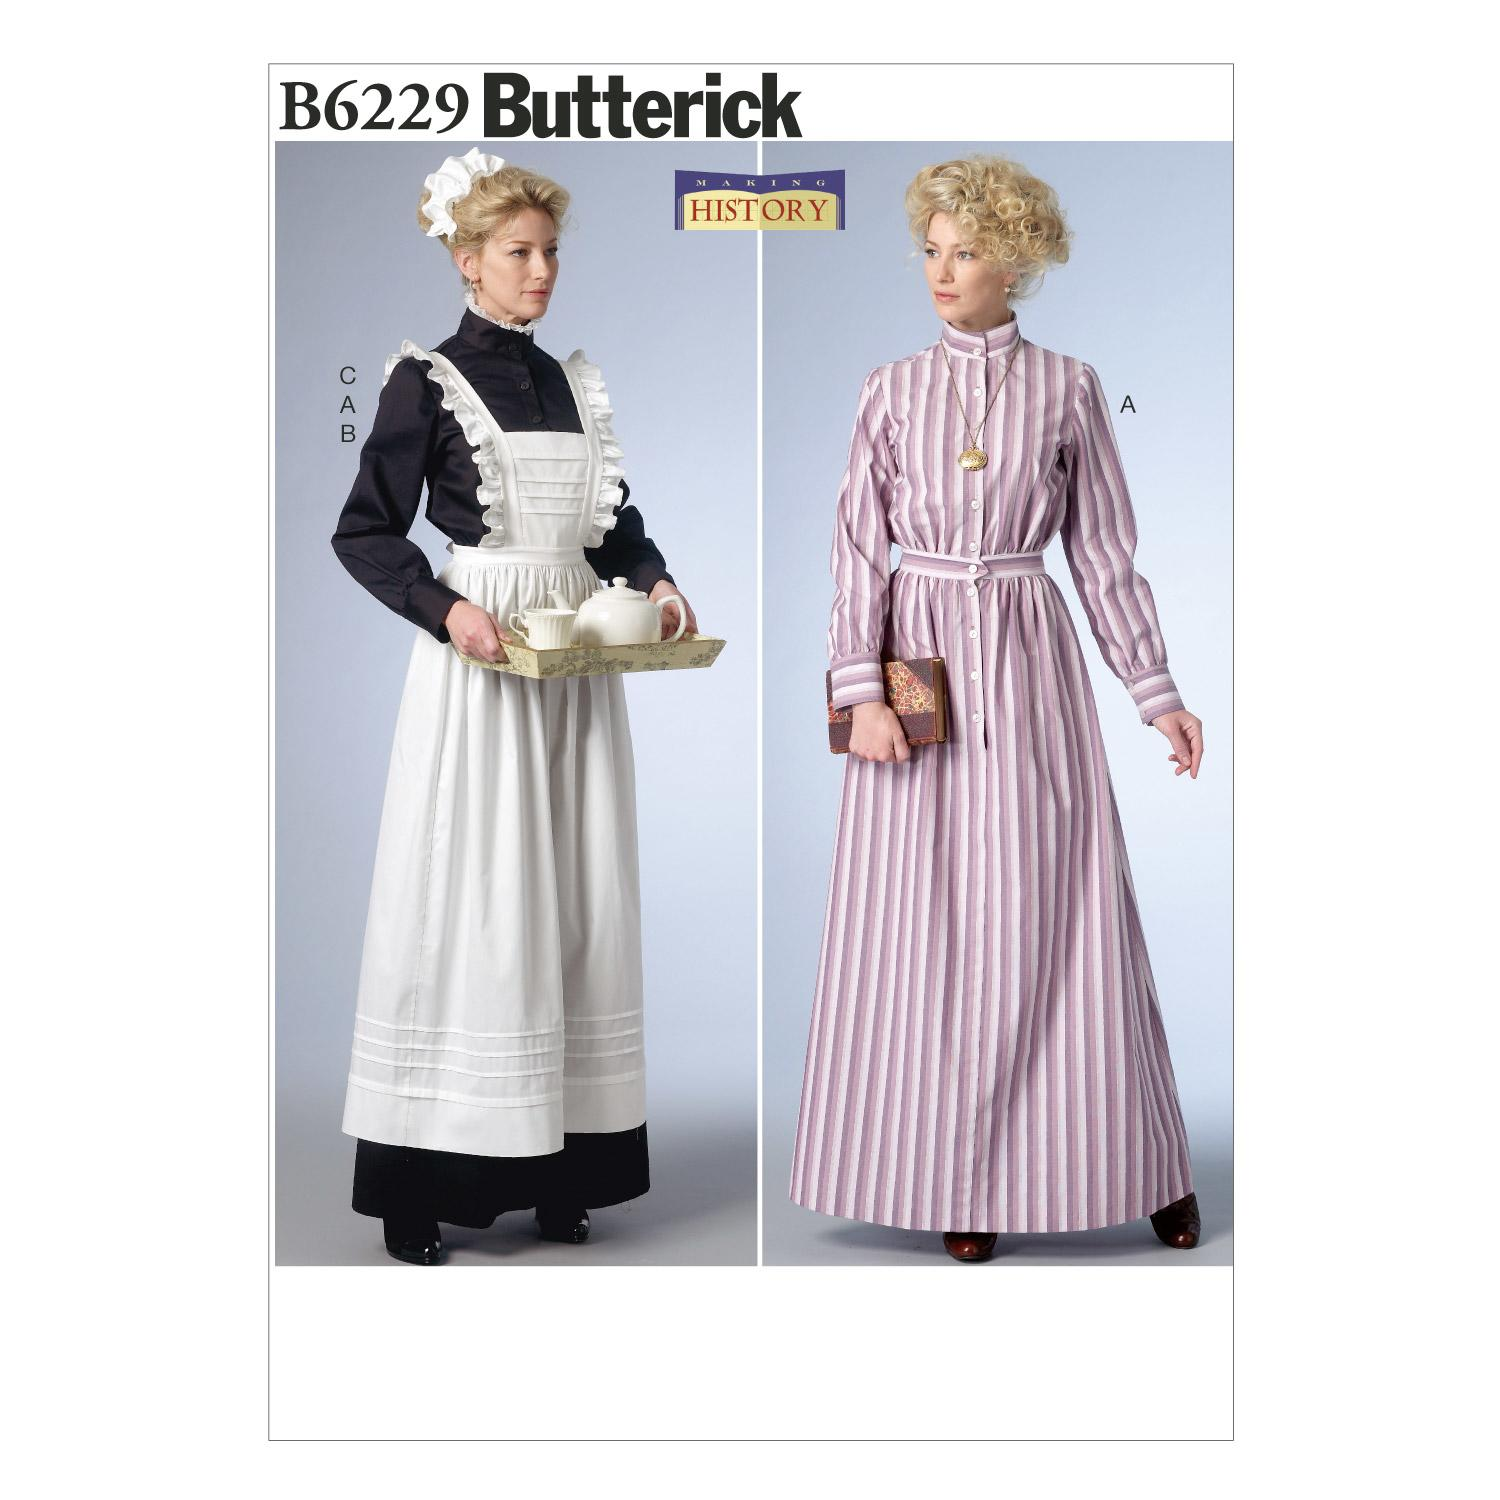 Butterick B6229 Misses' Costume